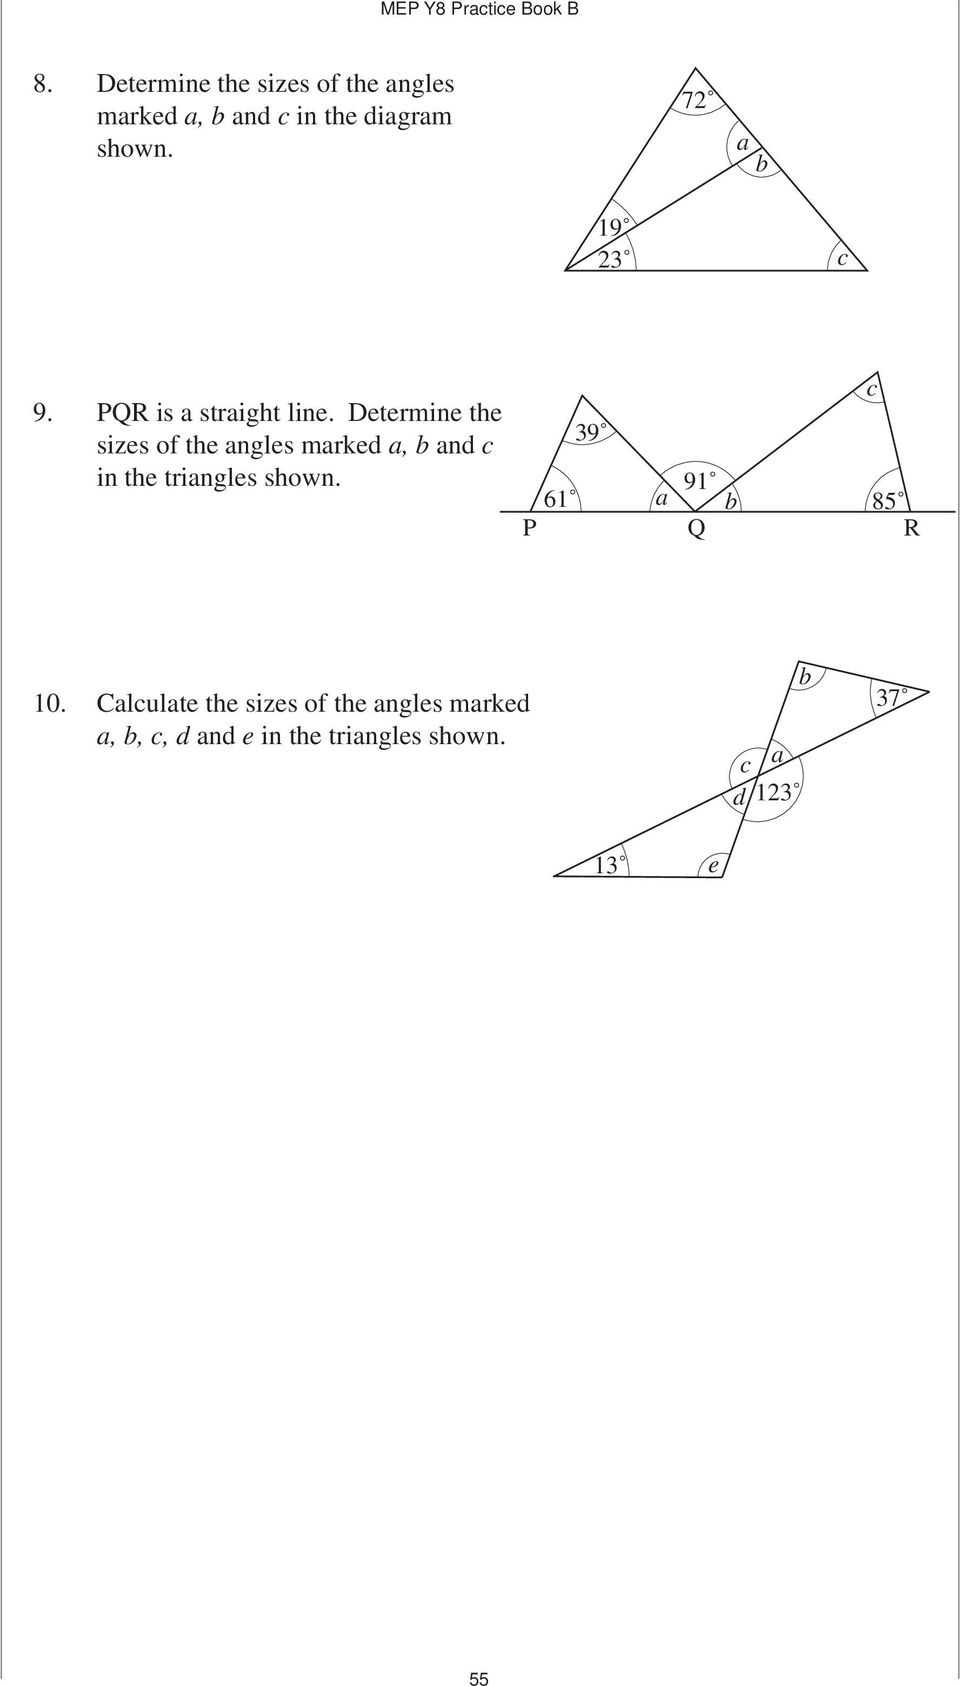 Determine the sizes of the angles marked a, and c in the triangles shown.